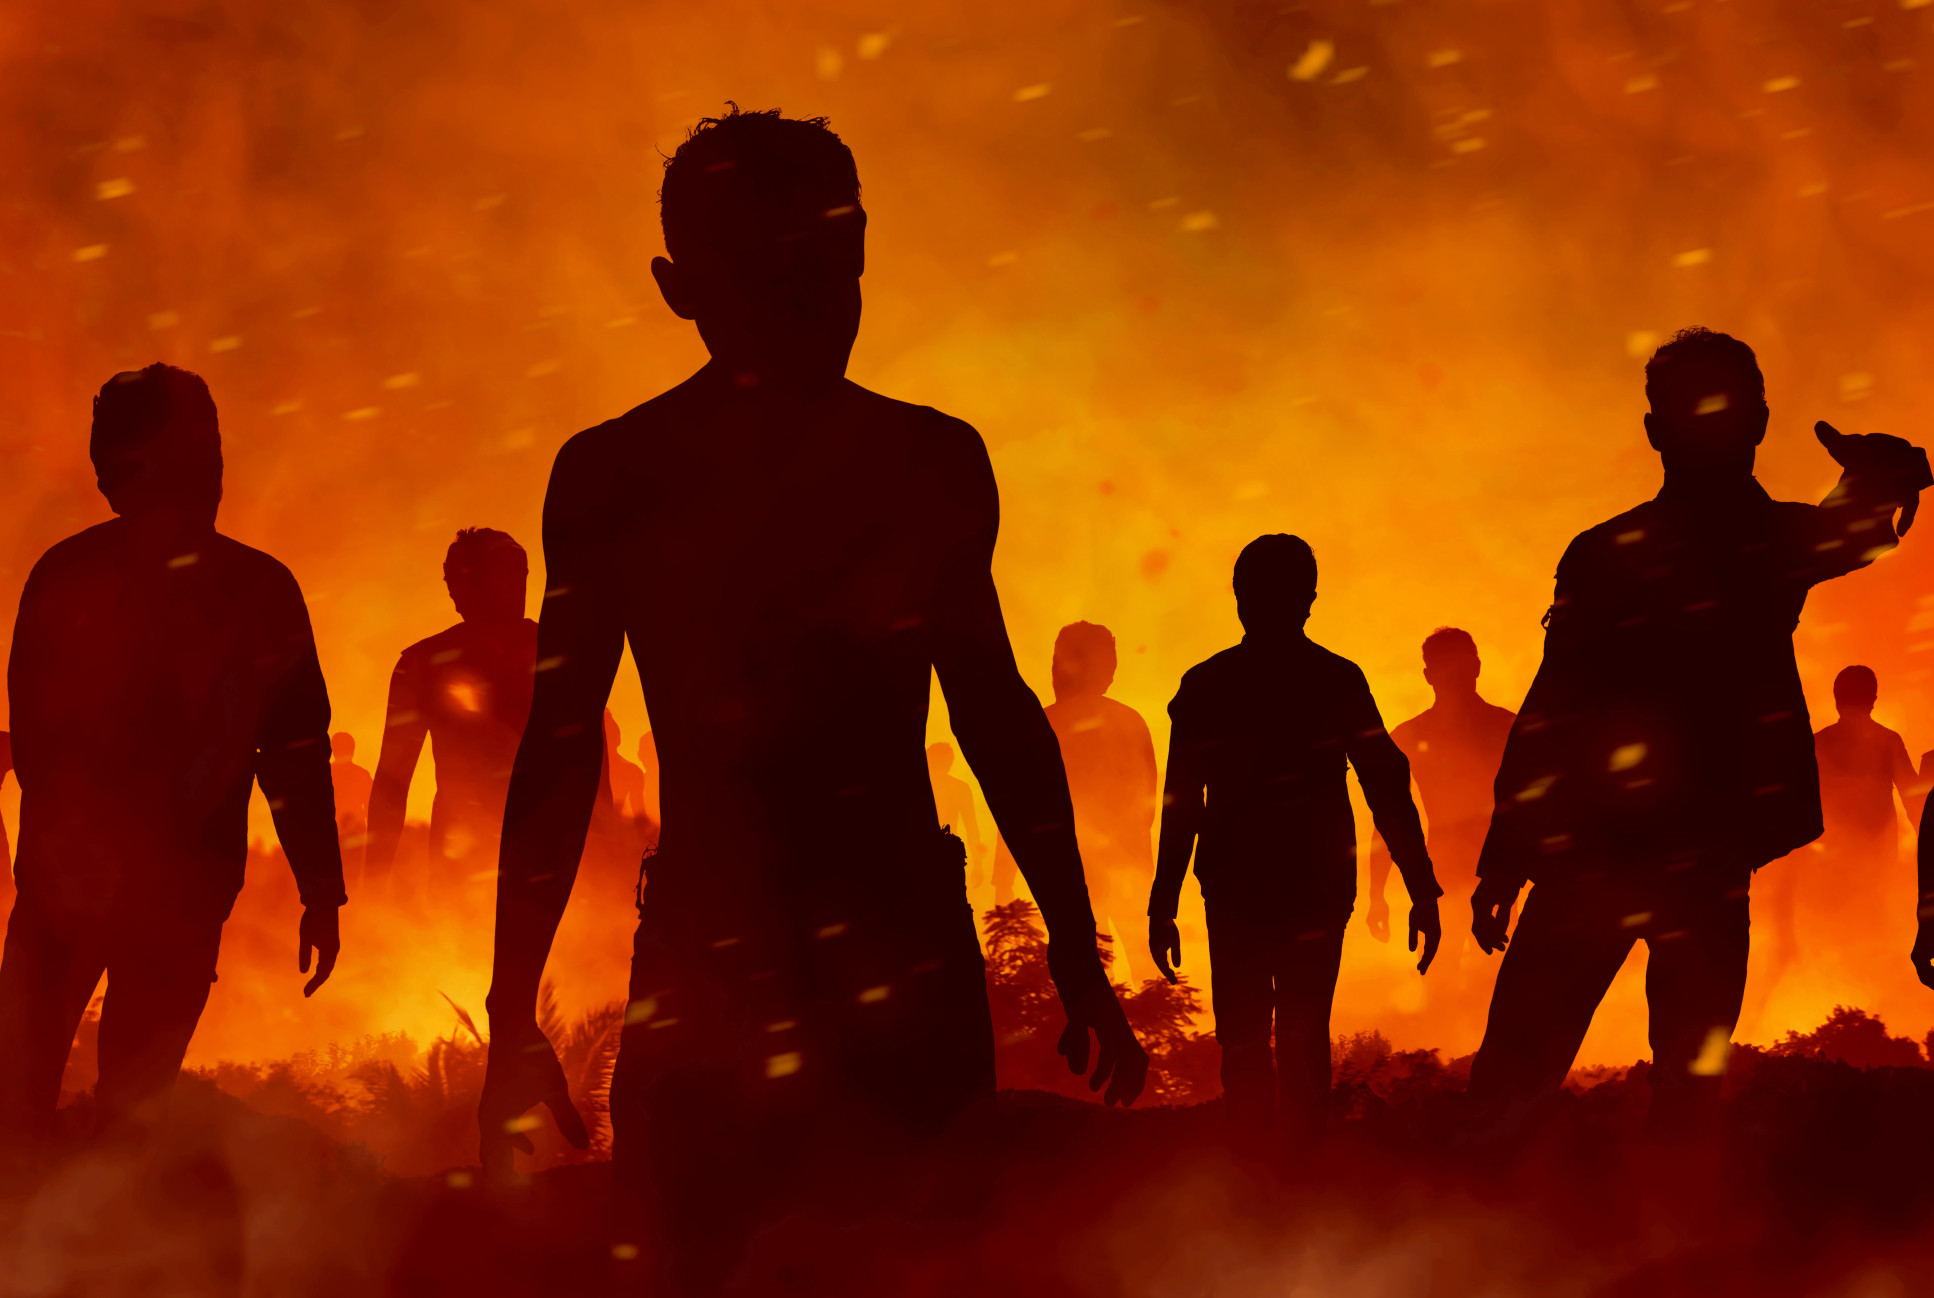 Zombies in silhouette against a firey backdrop